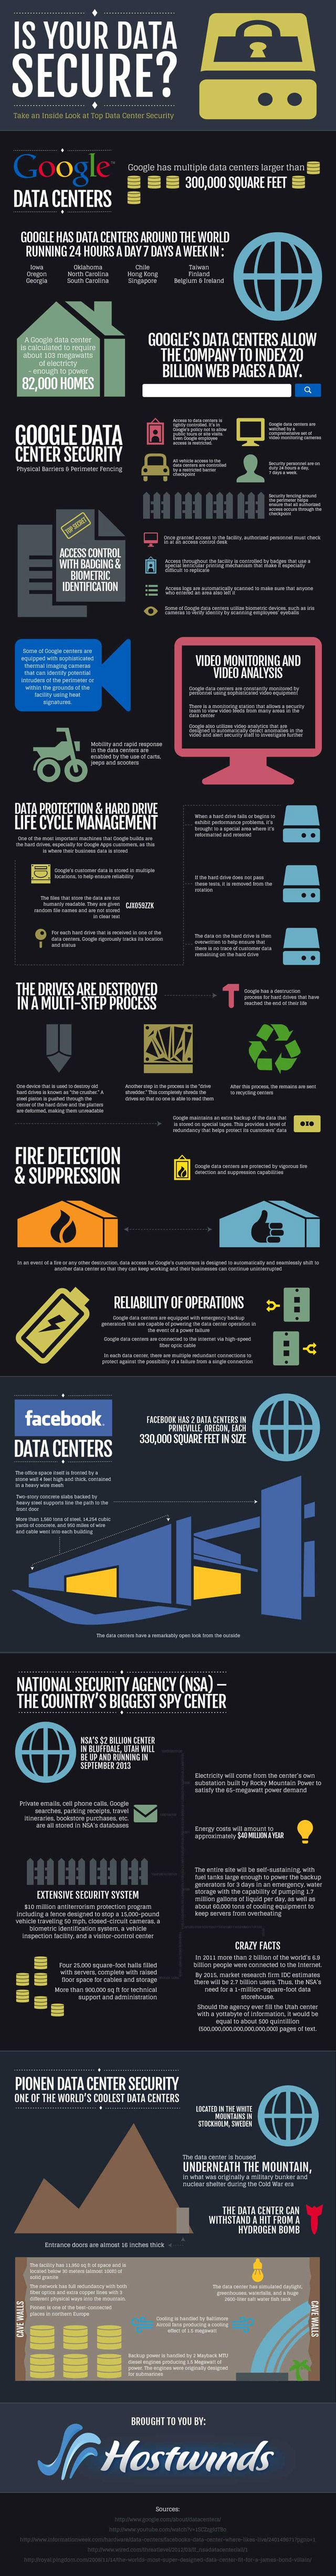 This infographic displays some of the more innovative ways in which Google, along with some of the other big tech firms, works tirelessly to protect the data of personal and business users – both foreign and domesti